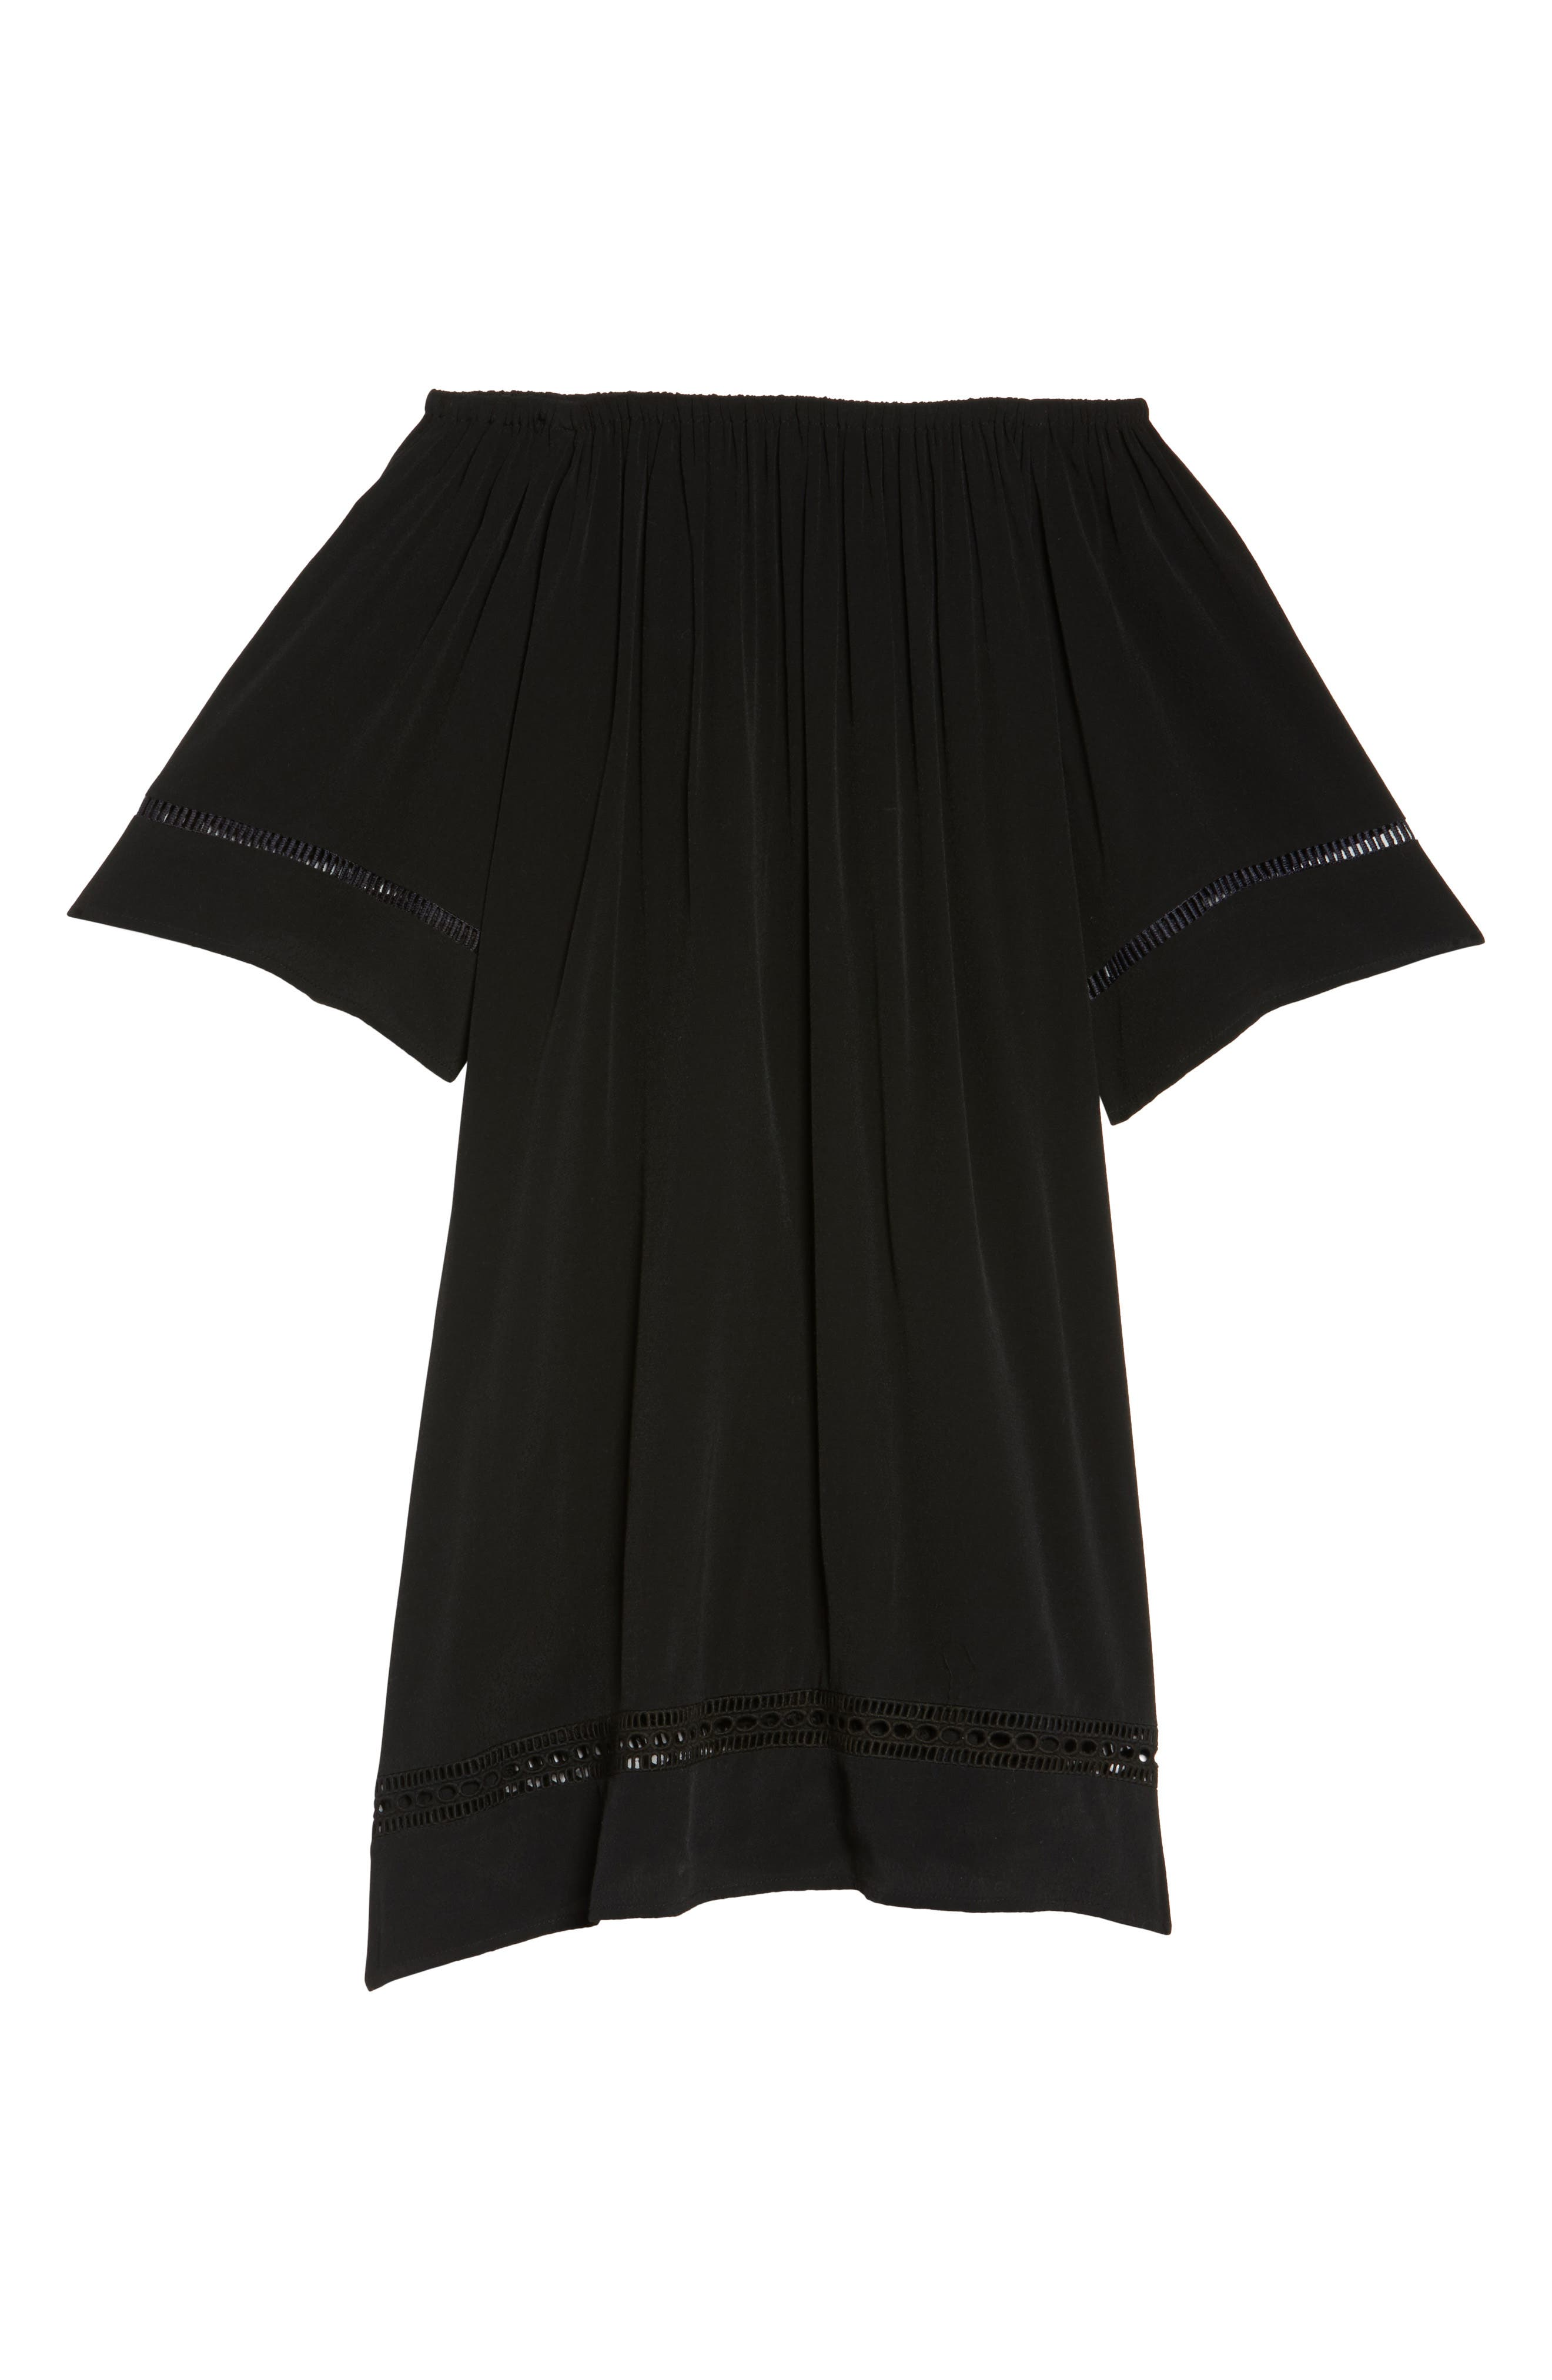 City Wide Off the Shoulder Cover-Up Dress,                             Alternate thumbnail 6, color,                             001